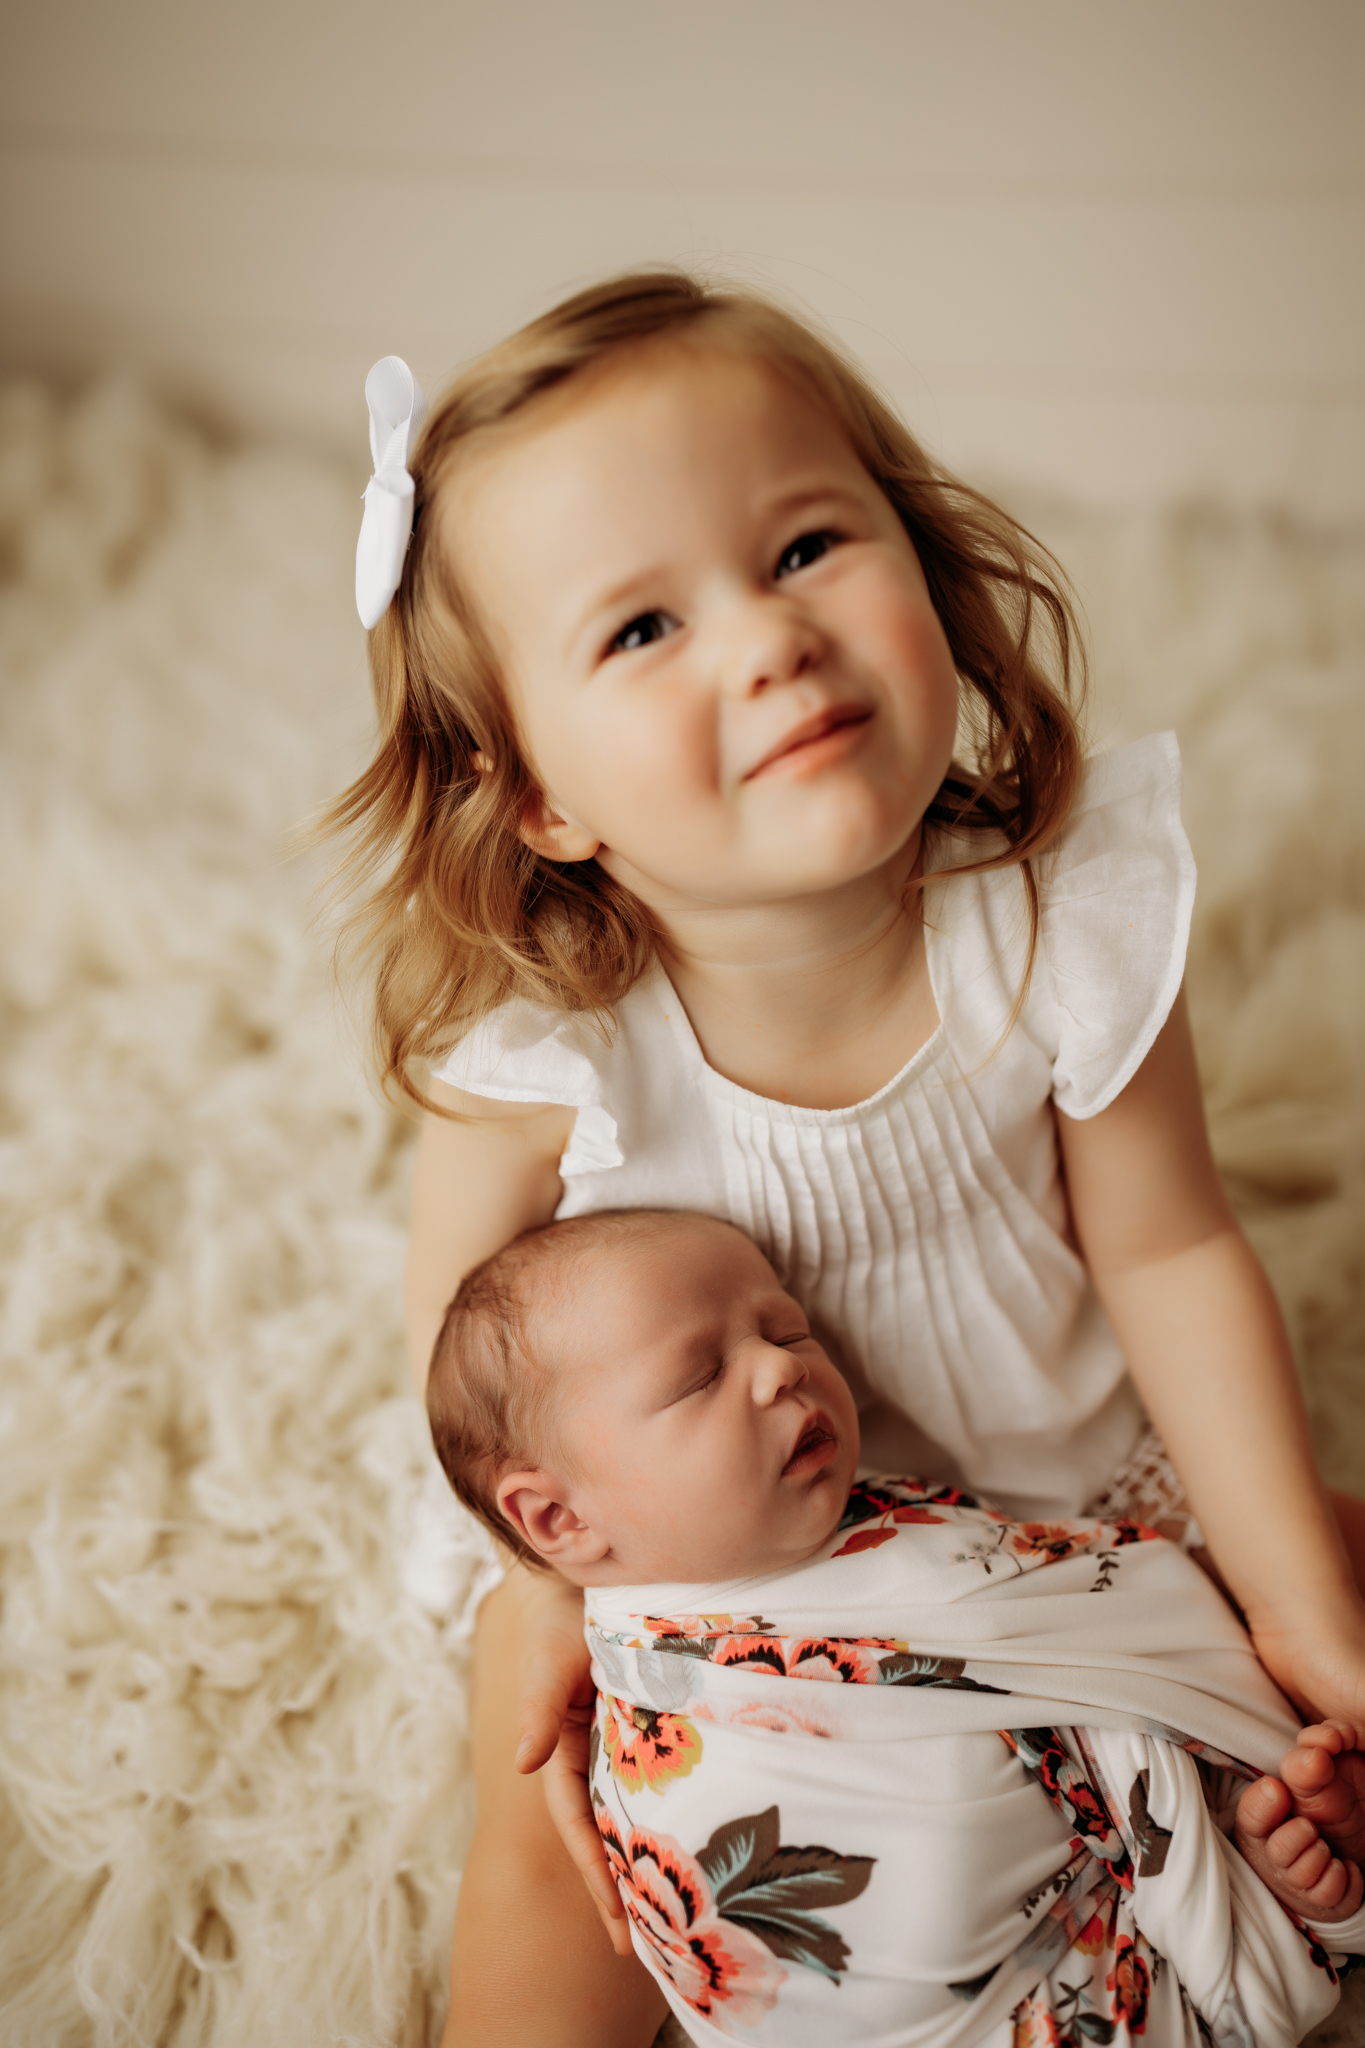 nwa newborn wrapped in a white and floral wrap sleeping while in big sisters arms while big sister looks and smiles at the camera